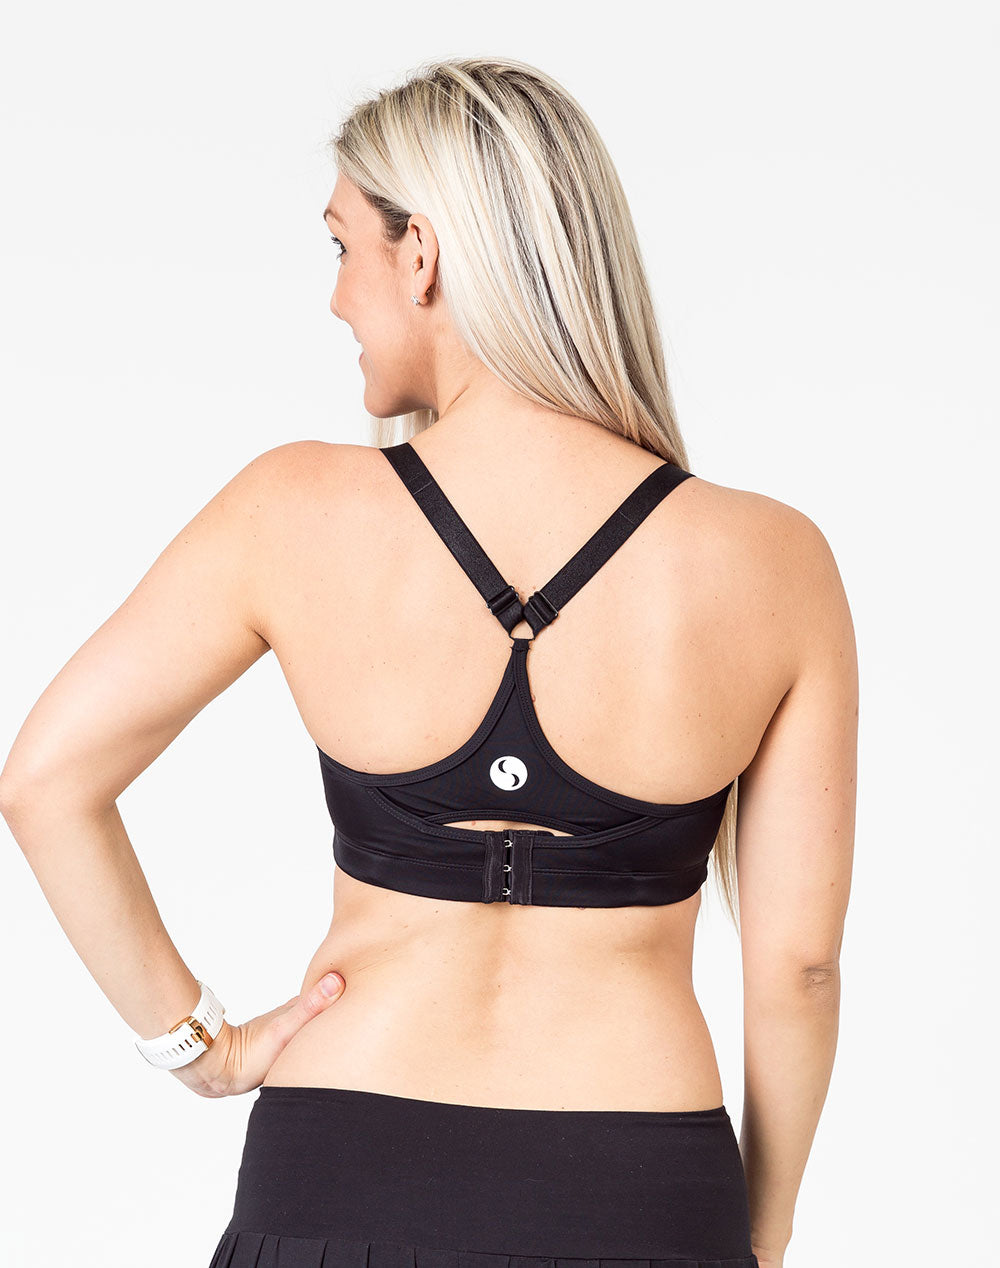 back view of a mum wearing a black maternity activewear bra with a racerback